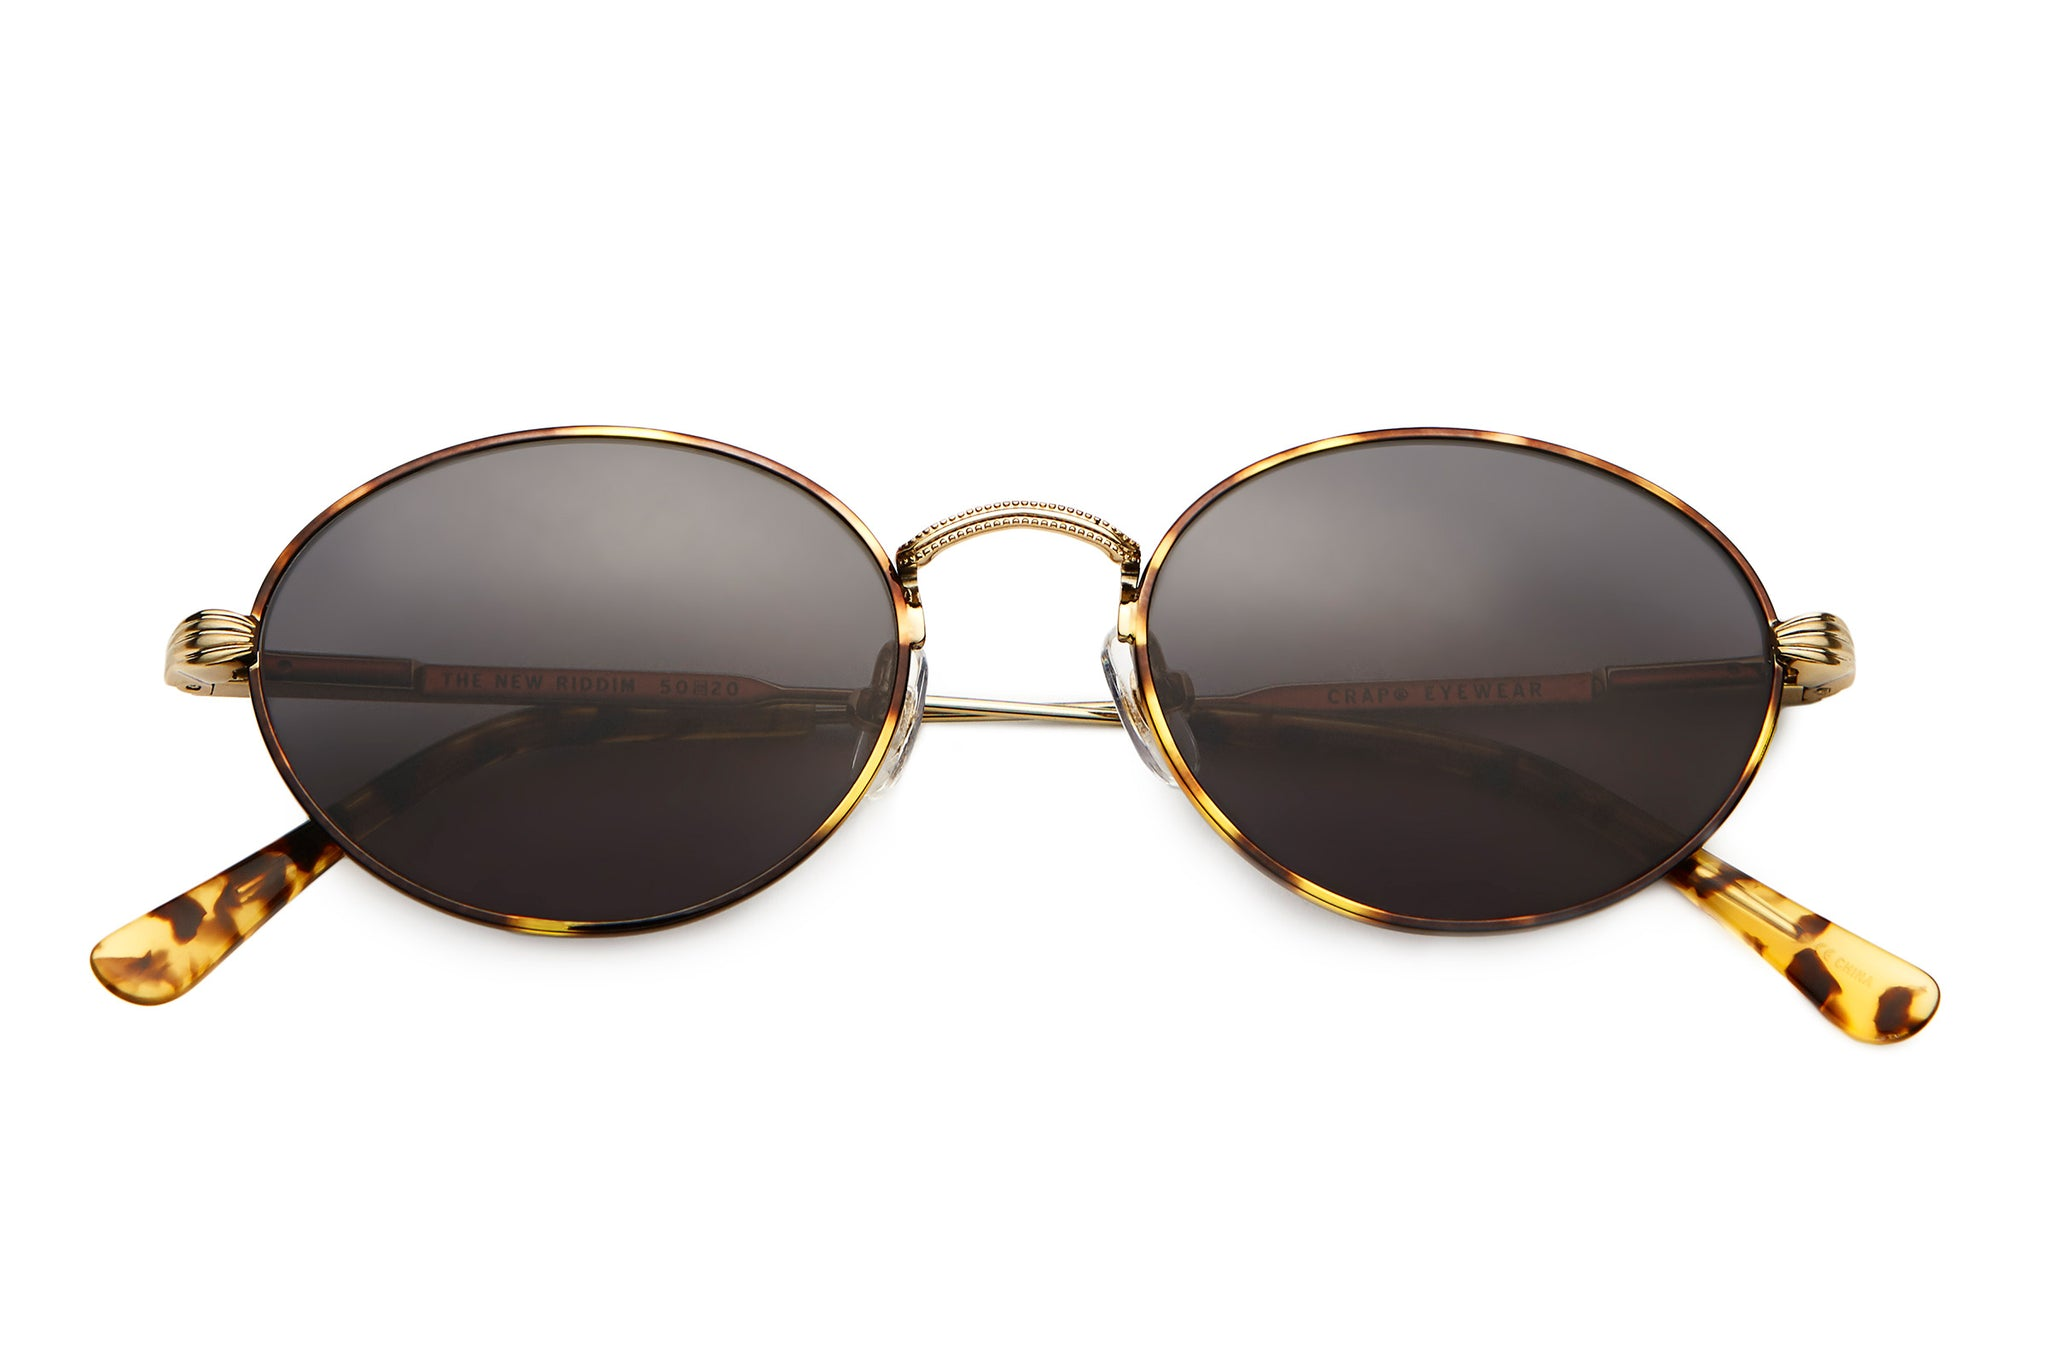 The New Riddim - Brushed Gold & Tokyo Tortoise - / Grey - Sunglasses